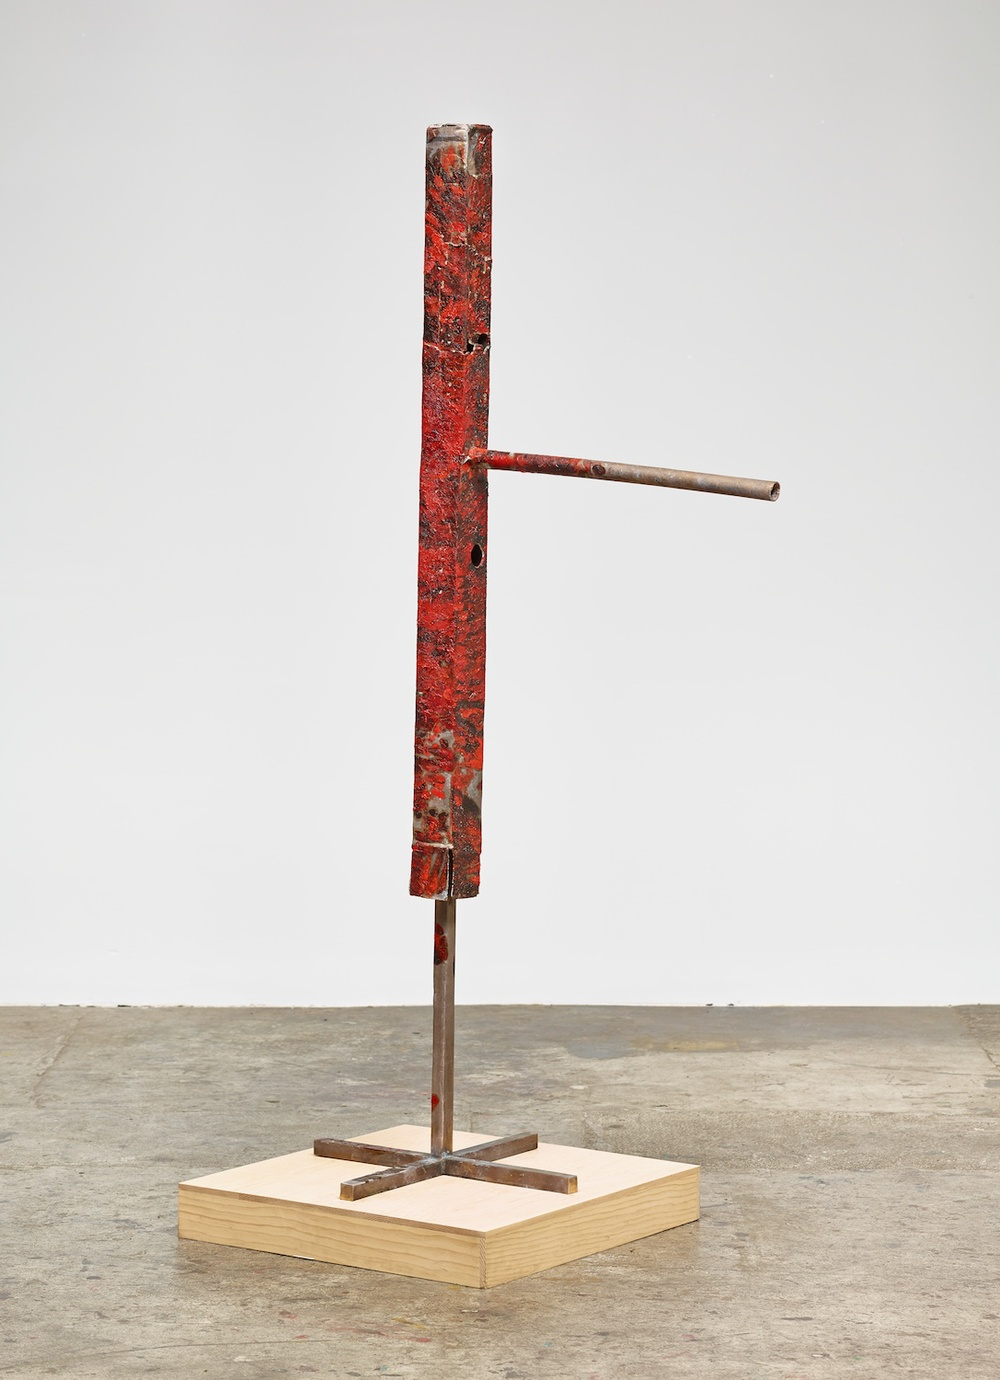 "Mark Grotjahn Untitled (Tall Skinny Big Nose Red and Black Tiger Pattern over Raw Mask M26.d) 2013 Painted bronze 78"" x 24"" x 40"" M26.d"